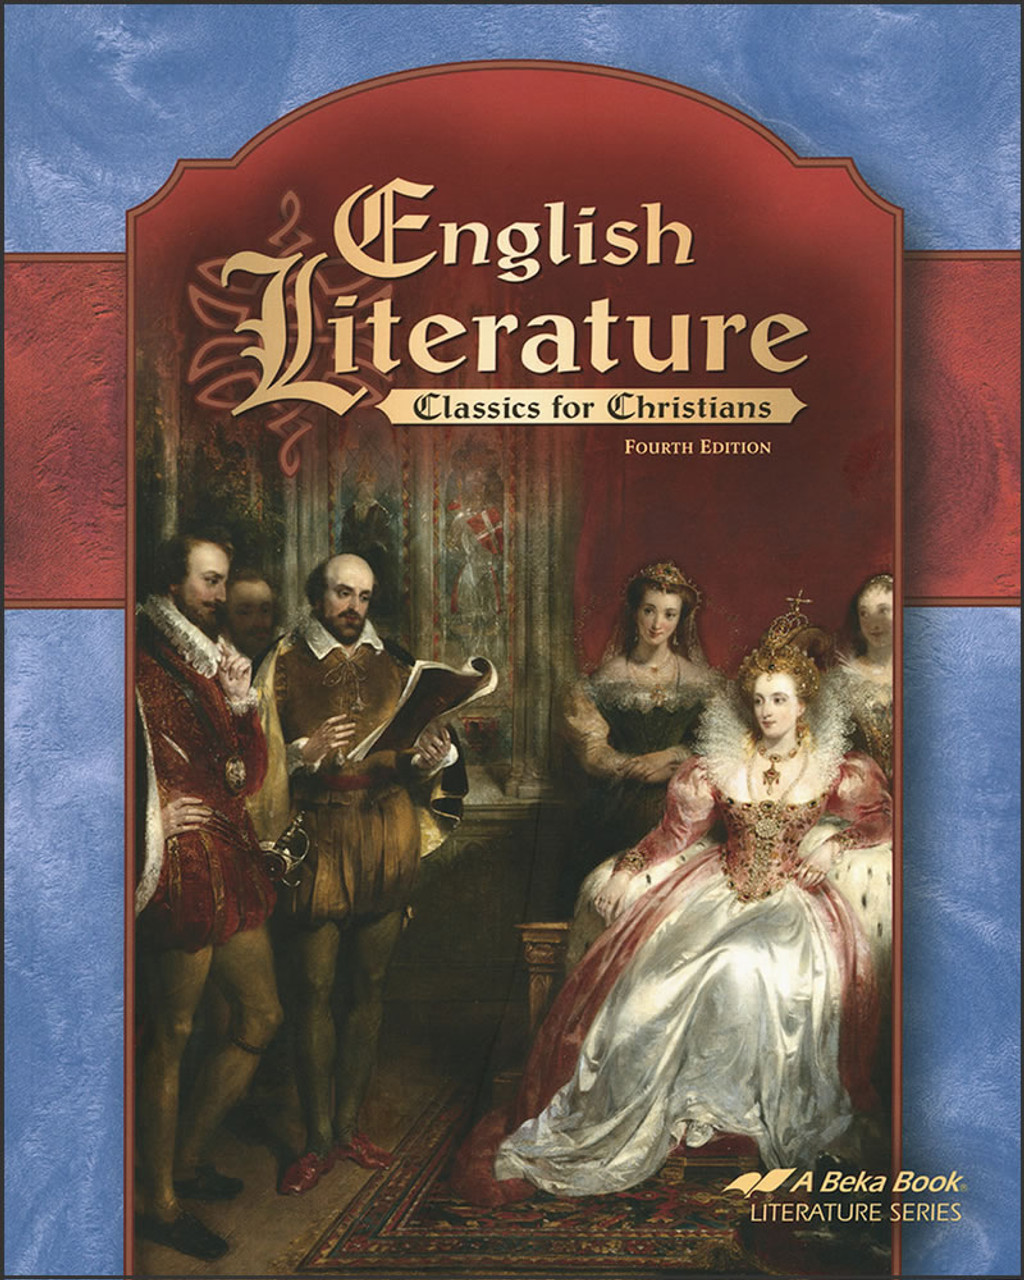 English Literature, 4th edition